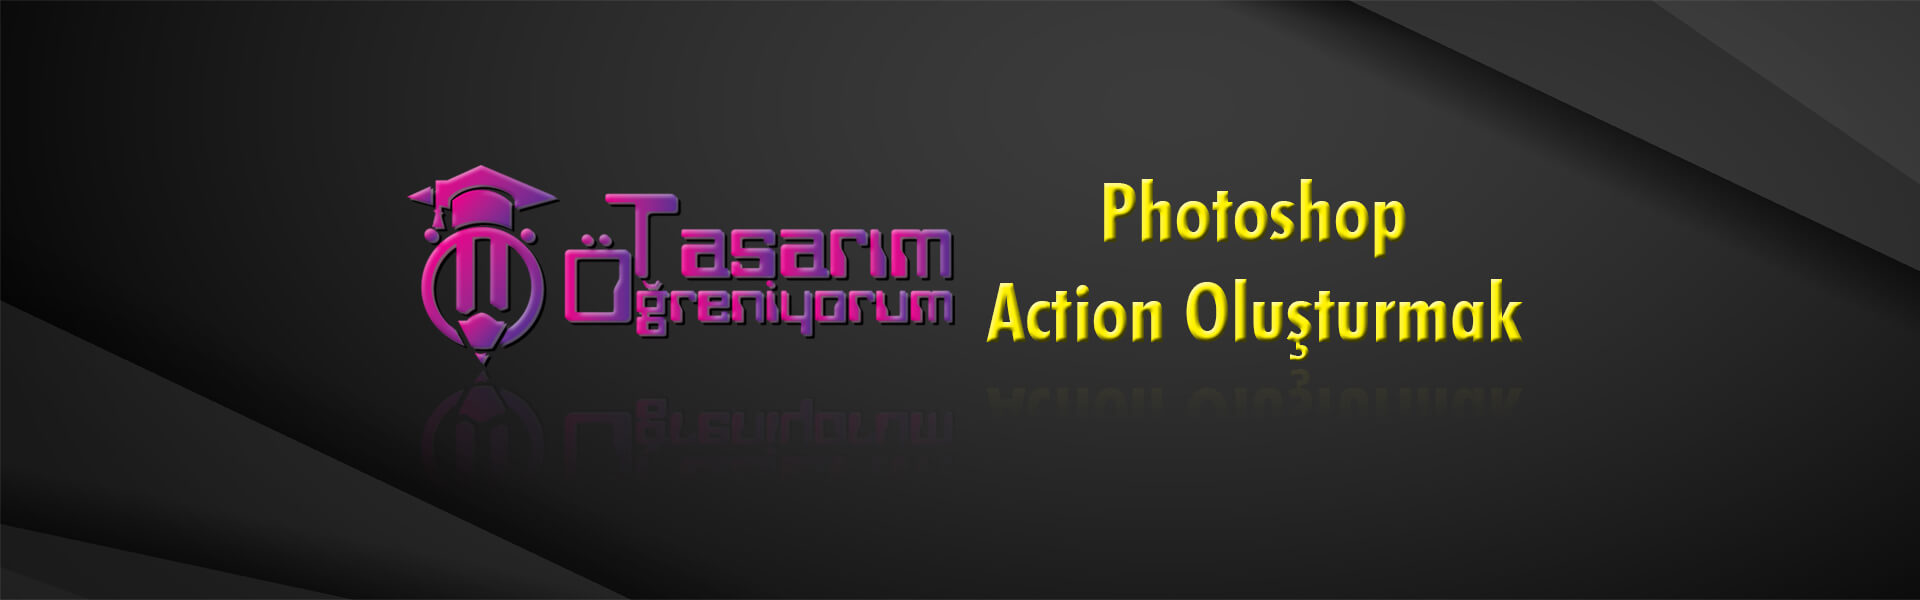 Photoshop'da Action